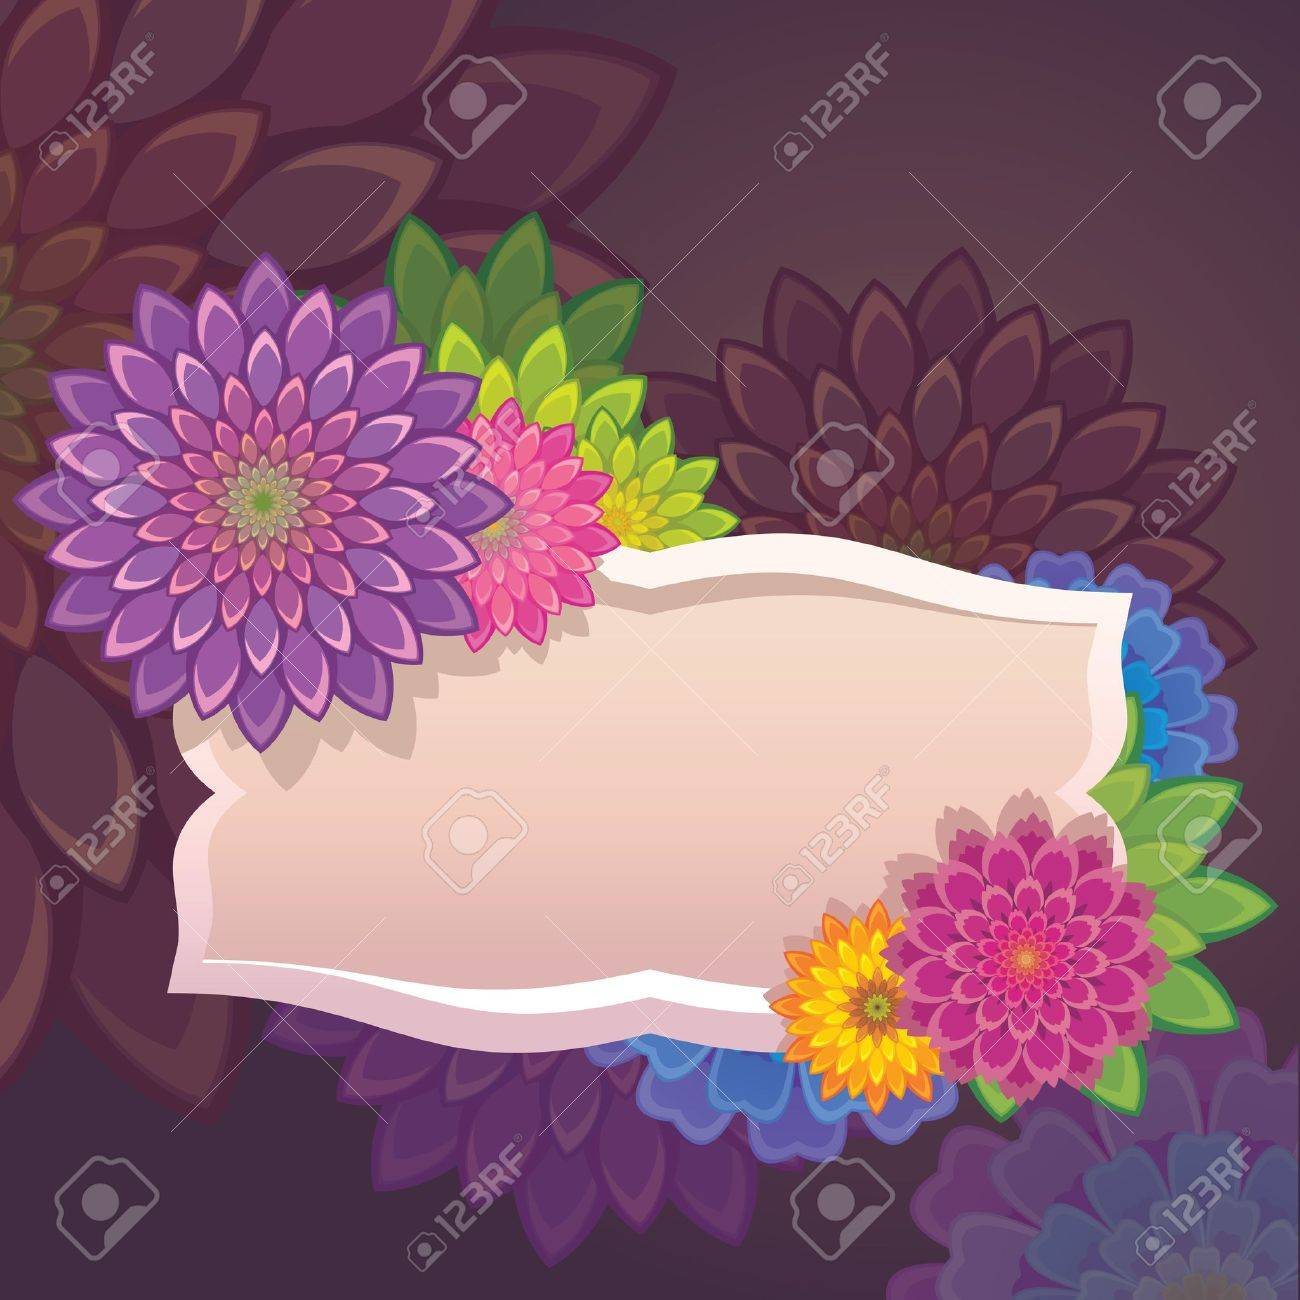 Flowers Tag Label Template Royalty Free Cliparts, Vectors, And Stock ...